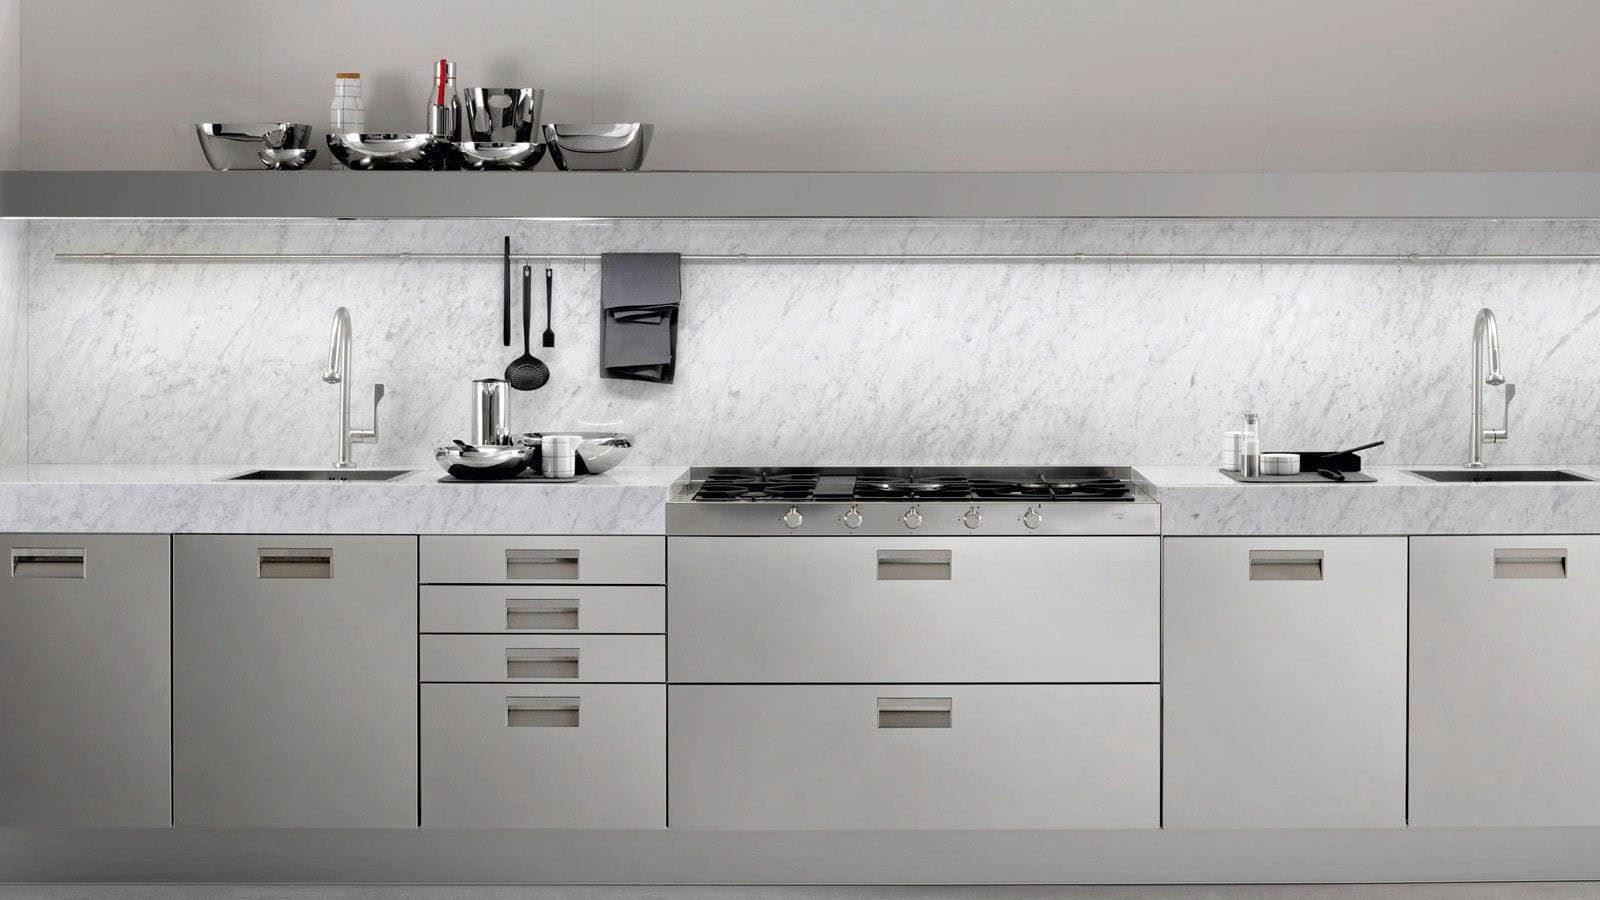 Arclinea milano kitchen italia principia stainless steel carrara marble grey luxury design interior